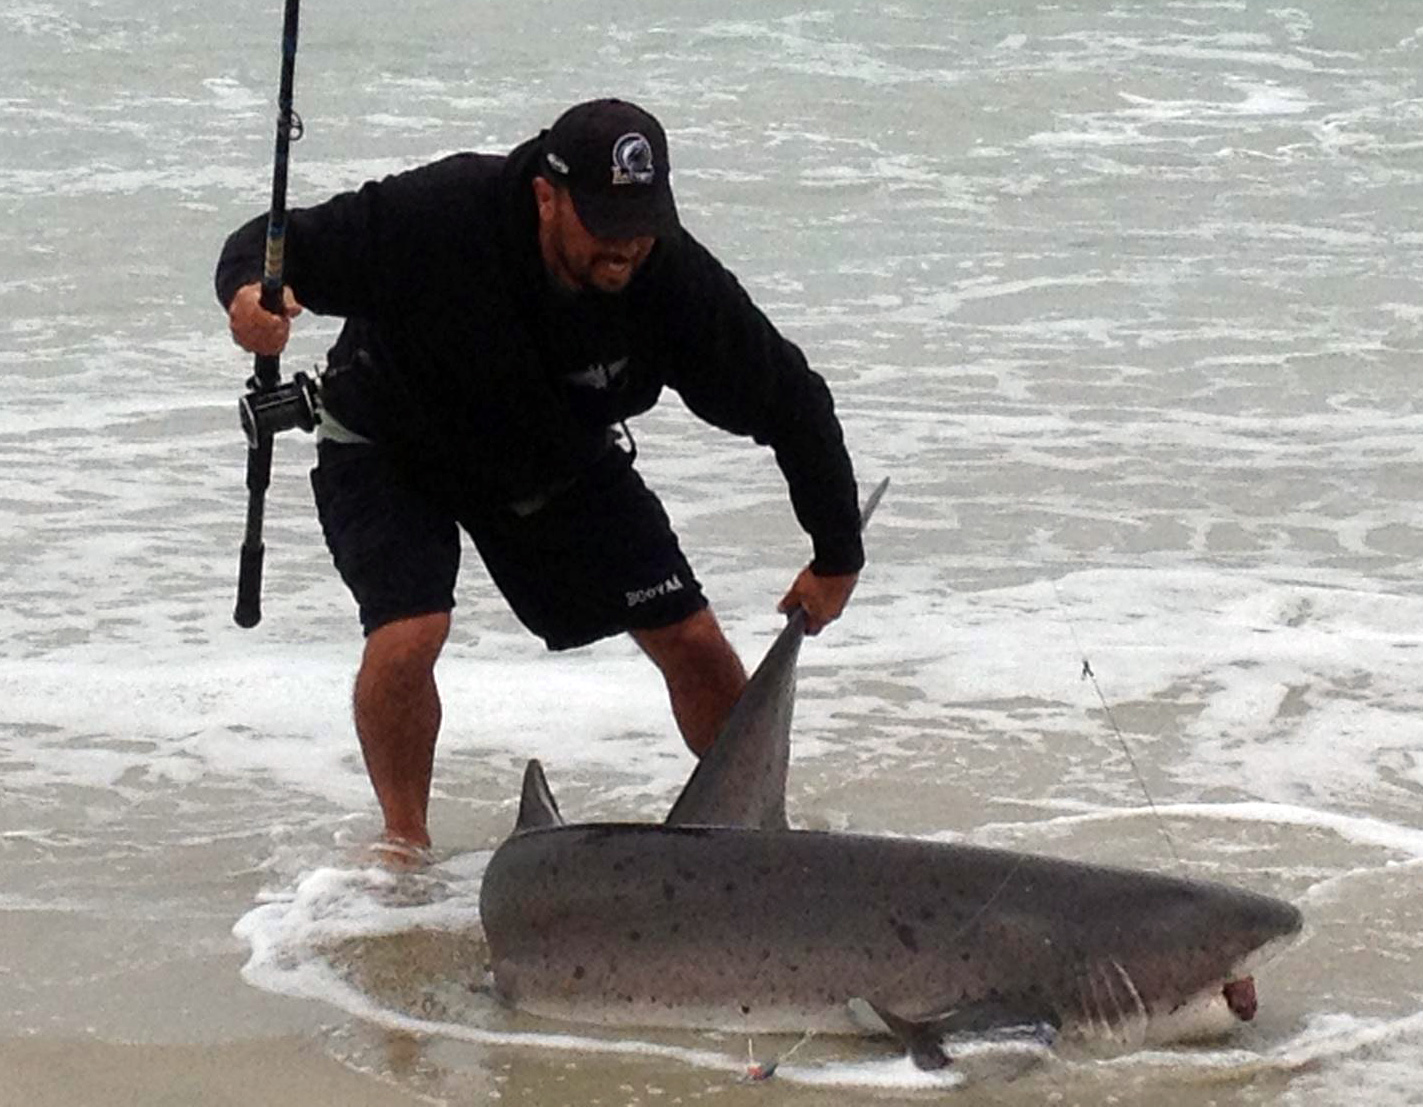 Big game socal surf fishing for Surf fishing southern california